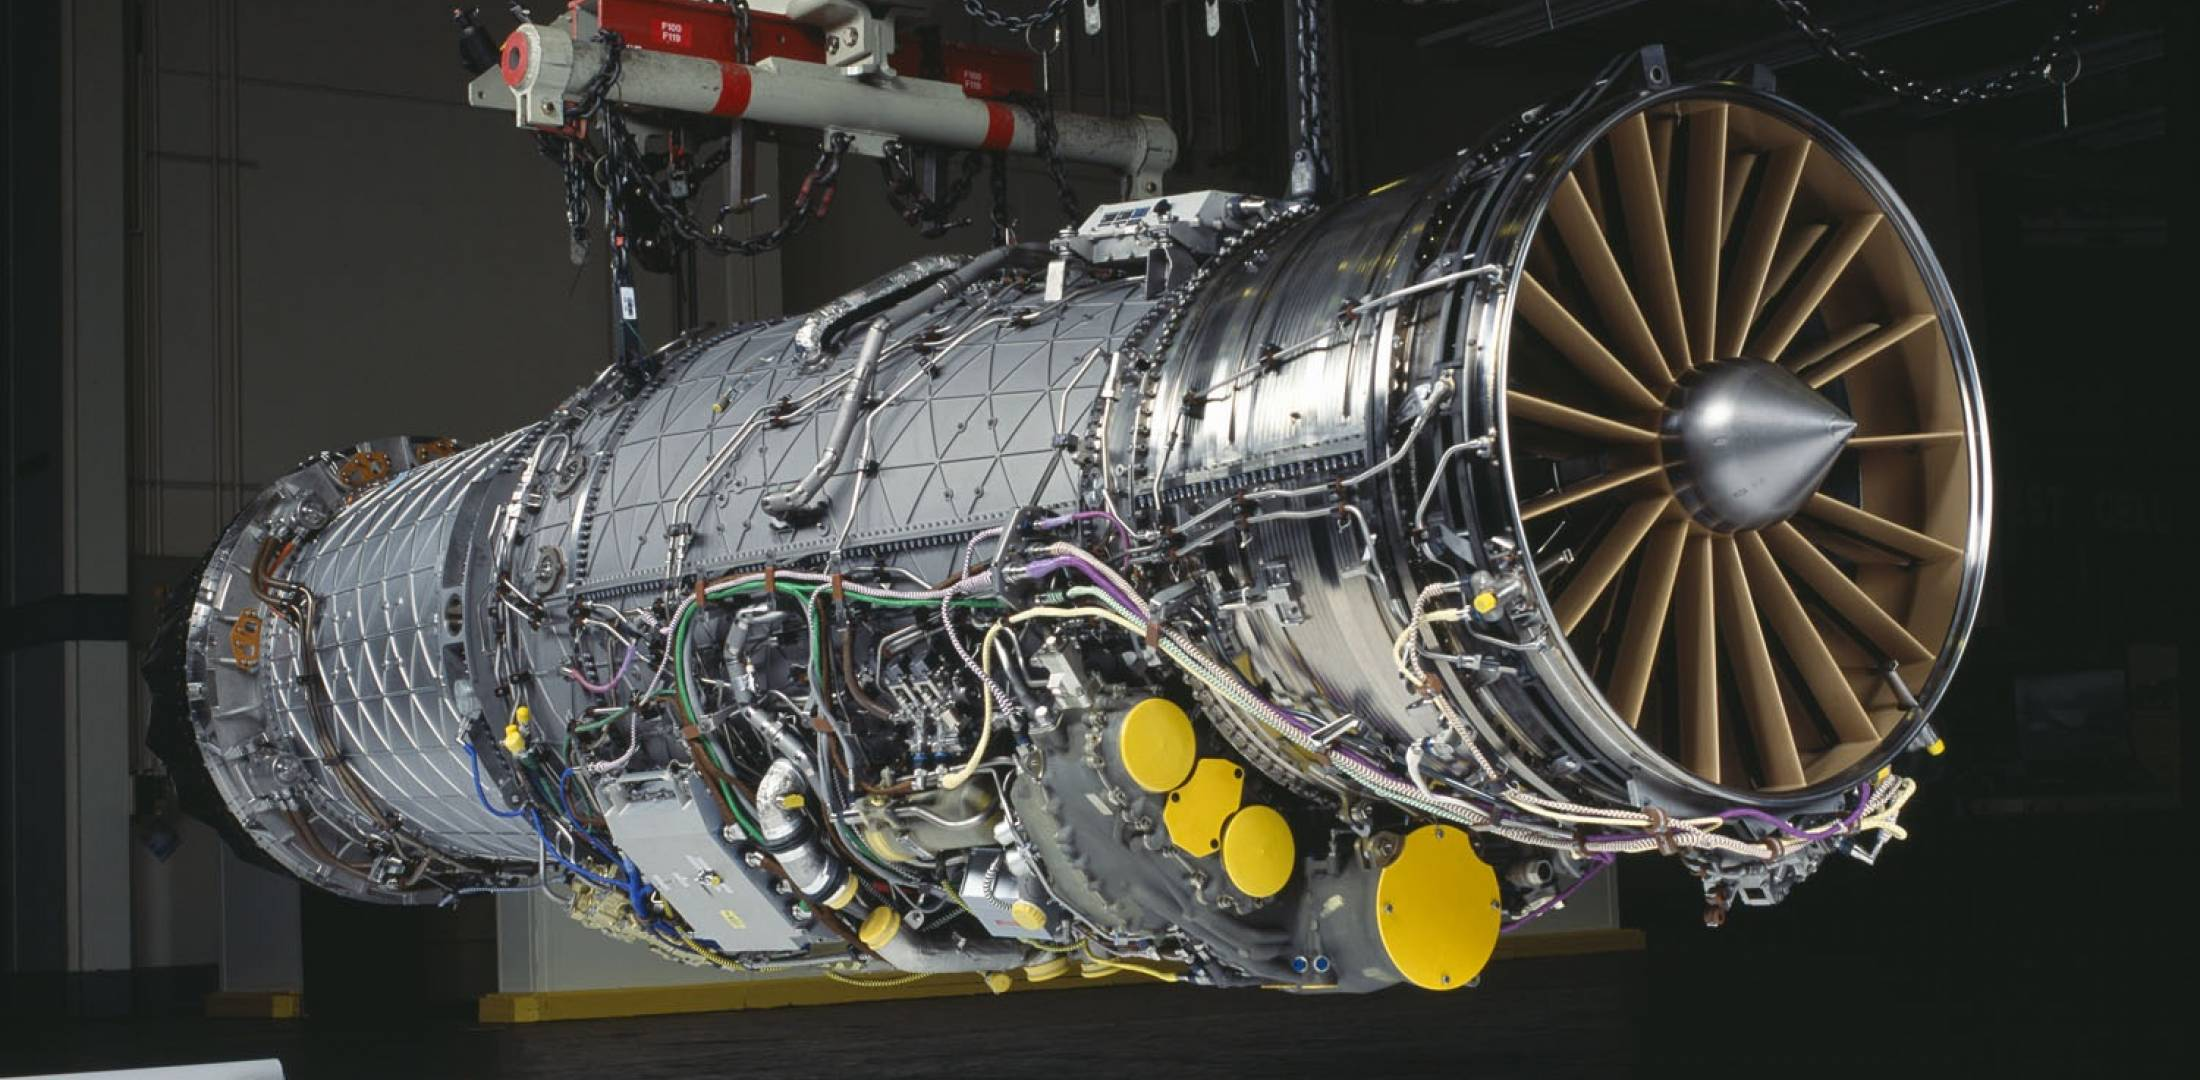 Pratt whitney wages war on cost to lower f135 price defense pratt whitneys war on cost predates f 35 manufacturer lockheed martins blueprint for affordability photo pratt whitney malvernweather Images